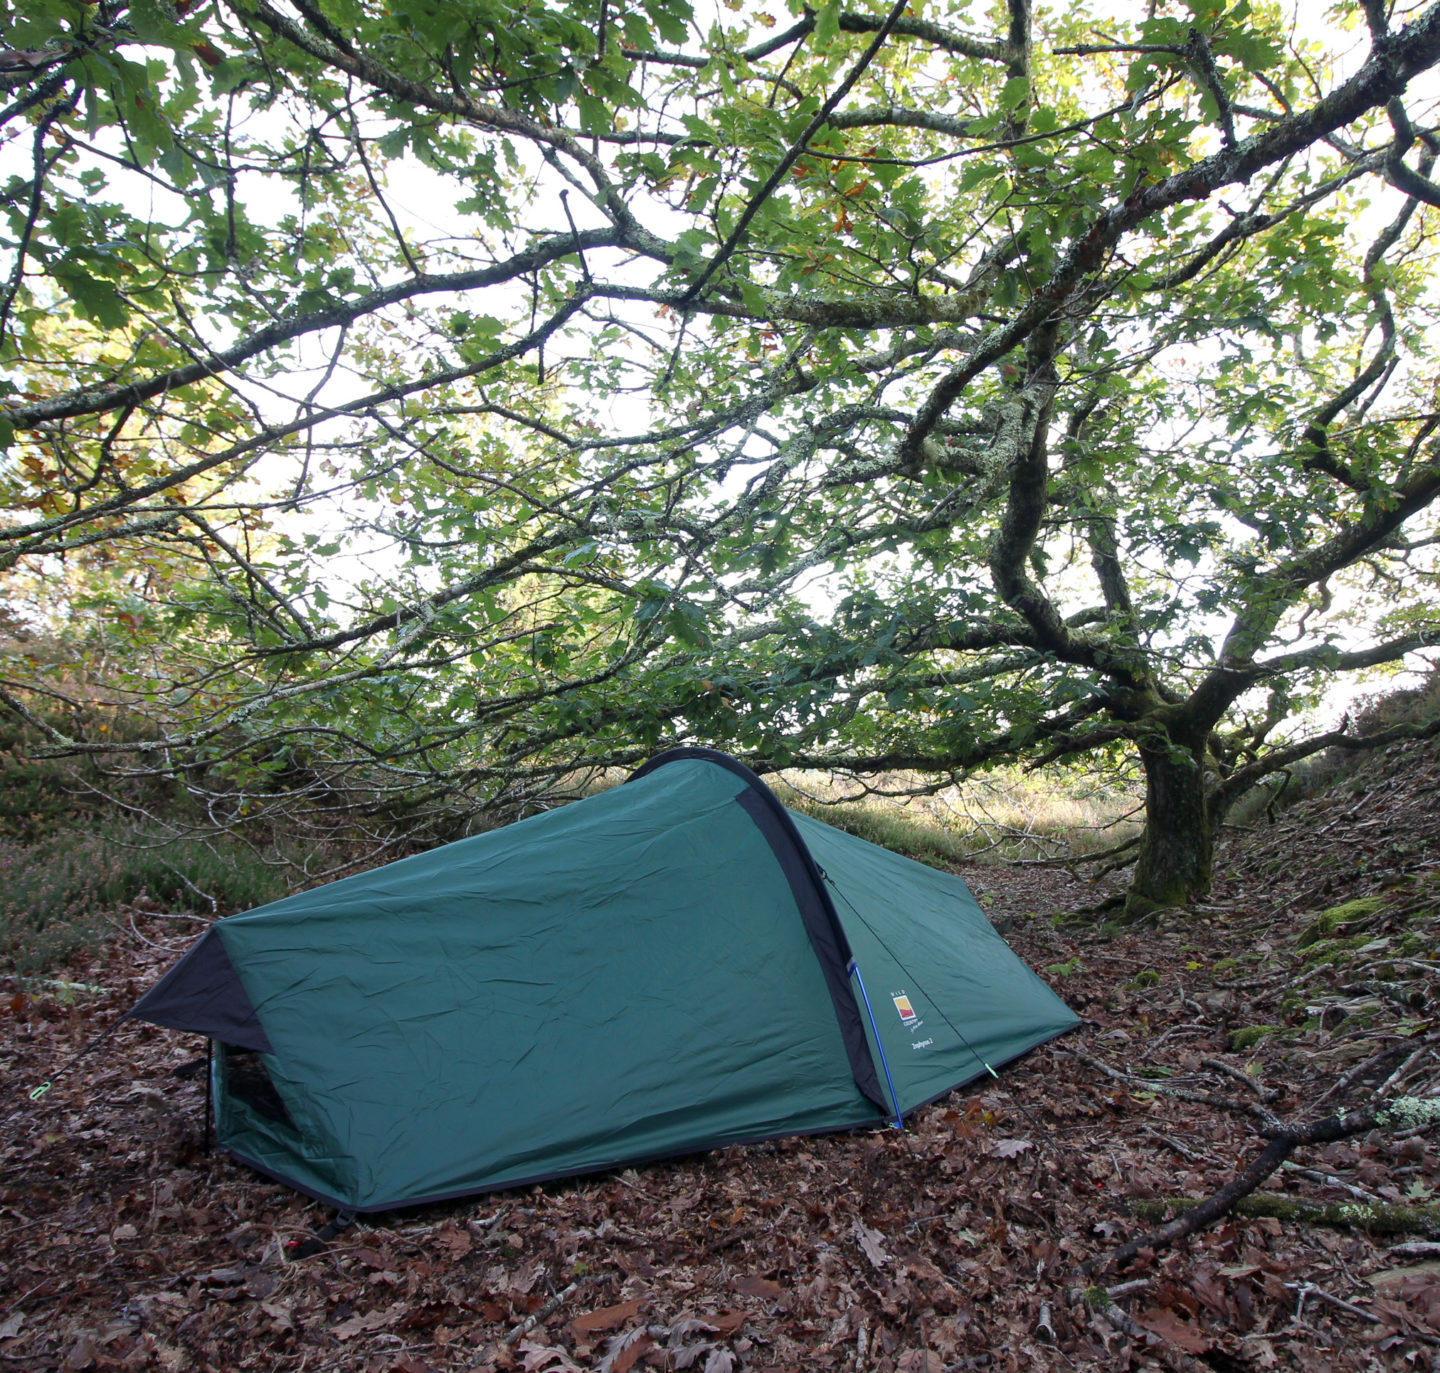 Wild Country Zephyros 2 Compact Tent Review